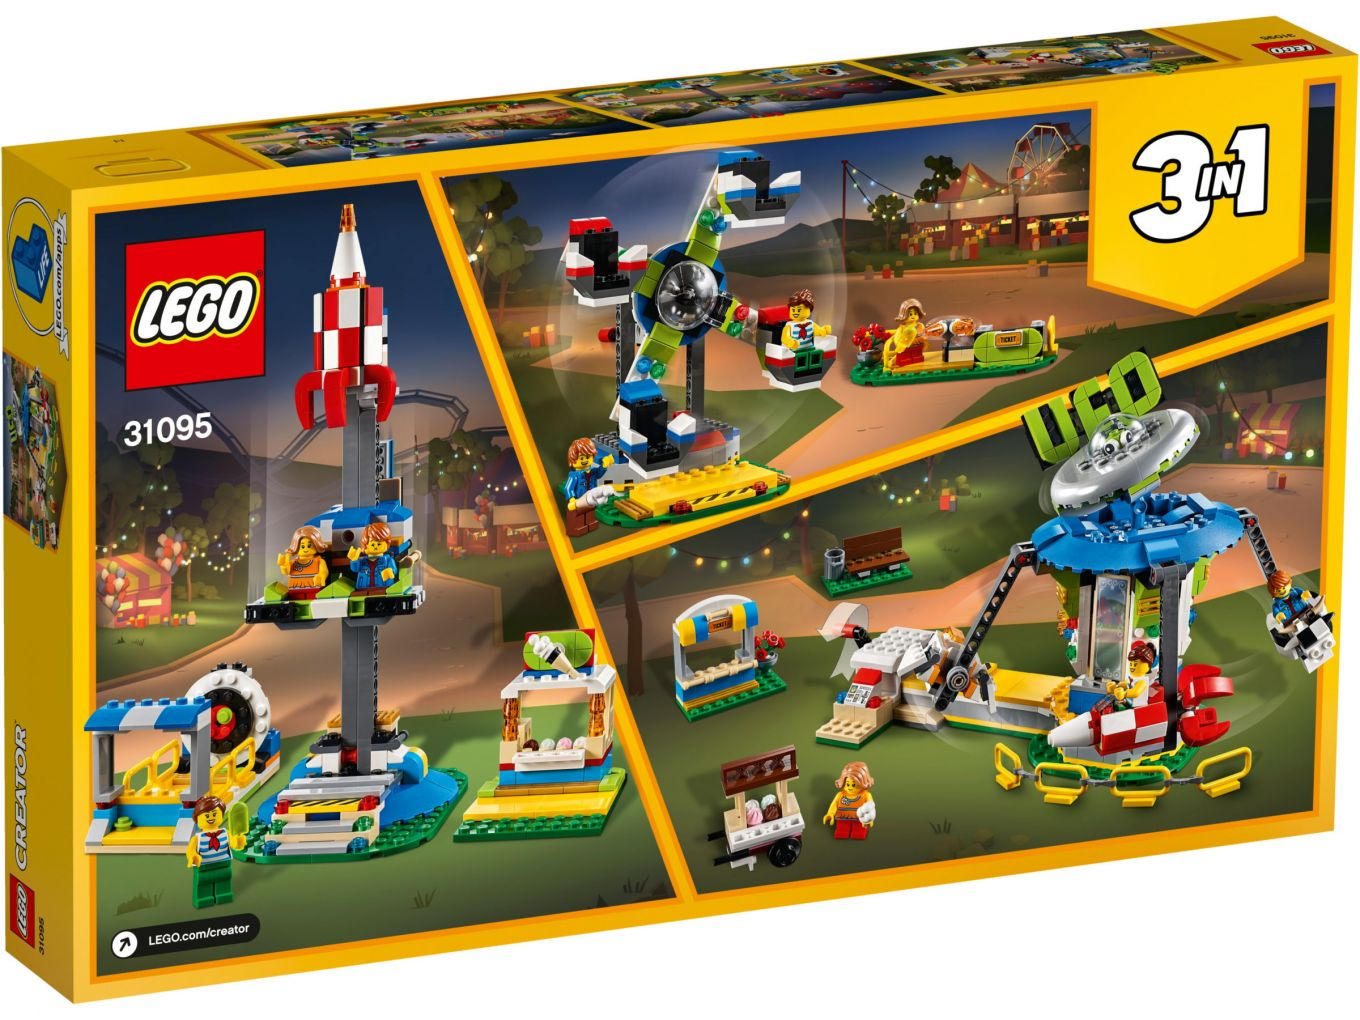 Lego Creator 31095 Carousel Box Back The Brothers Brick The